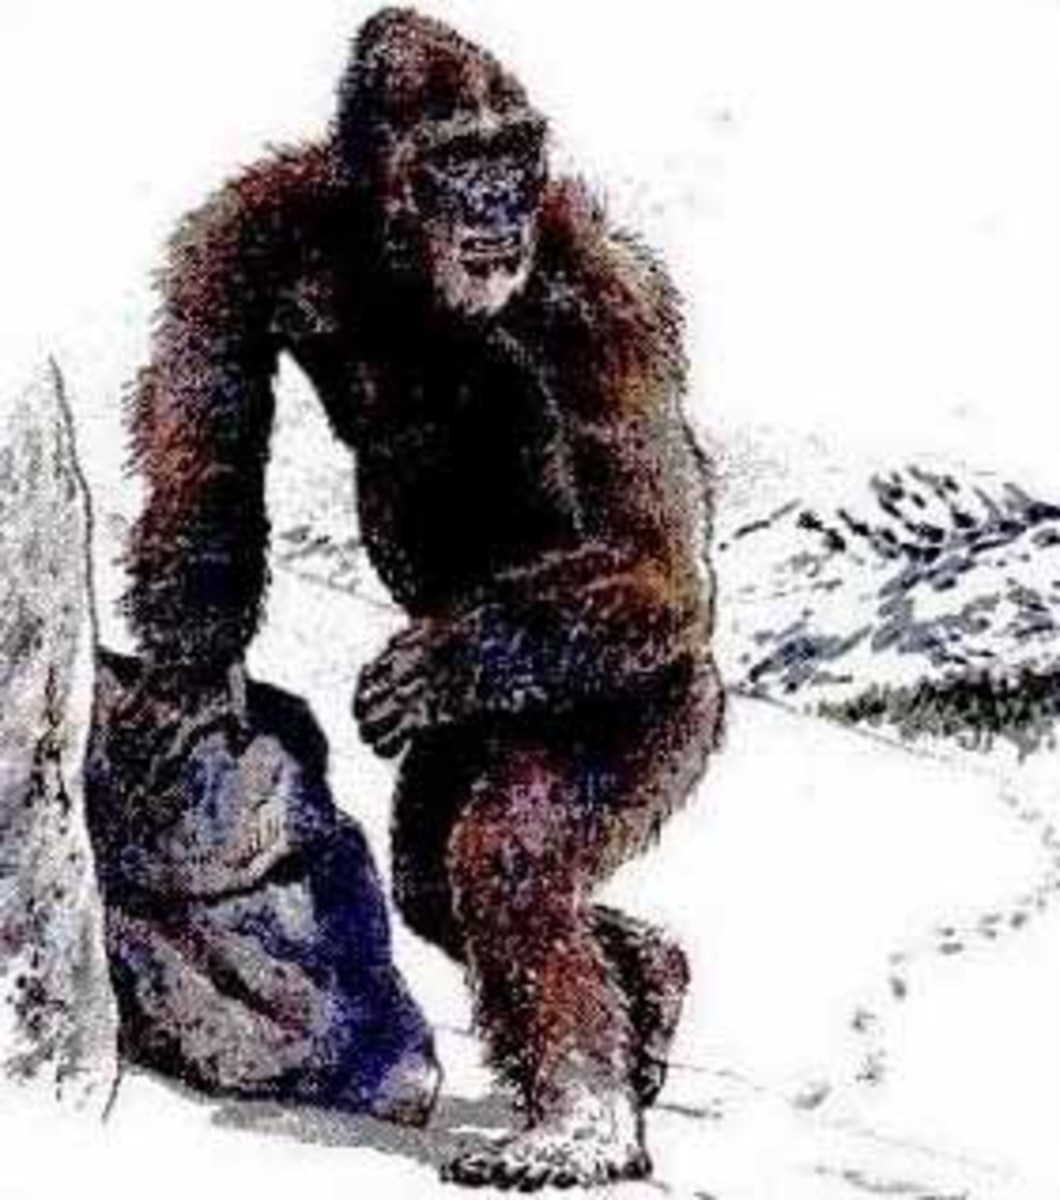 An illustration of a Yeti. Looks a lot like Bigfoot too.